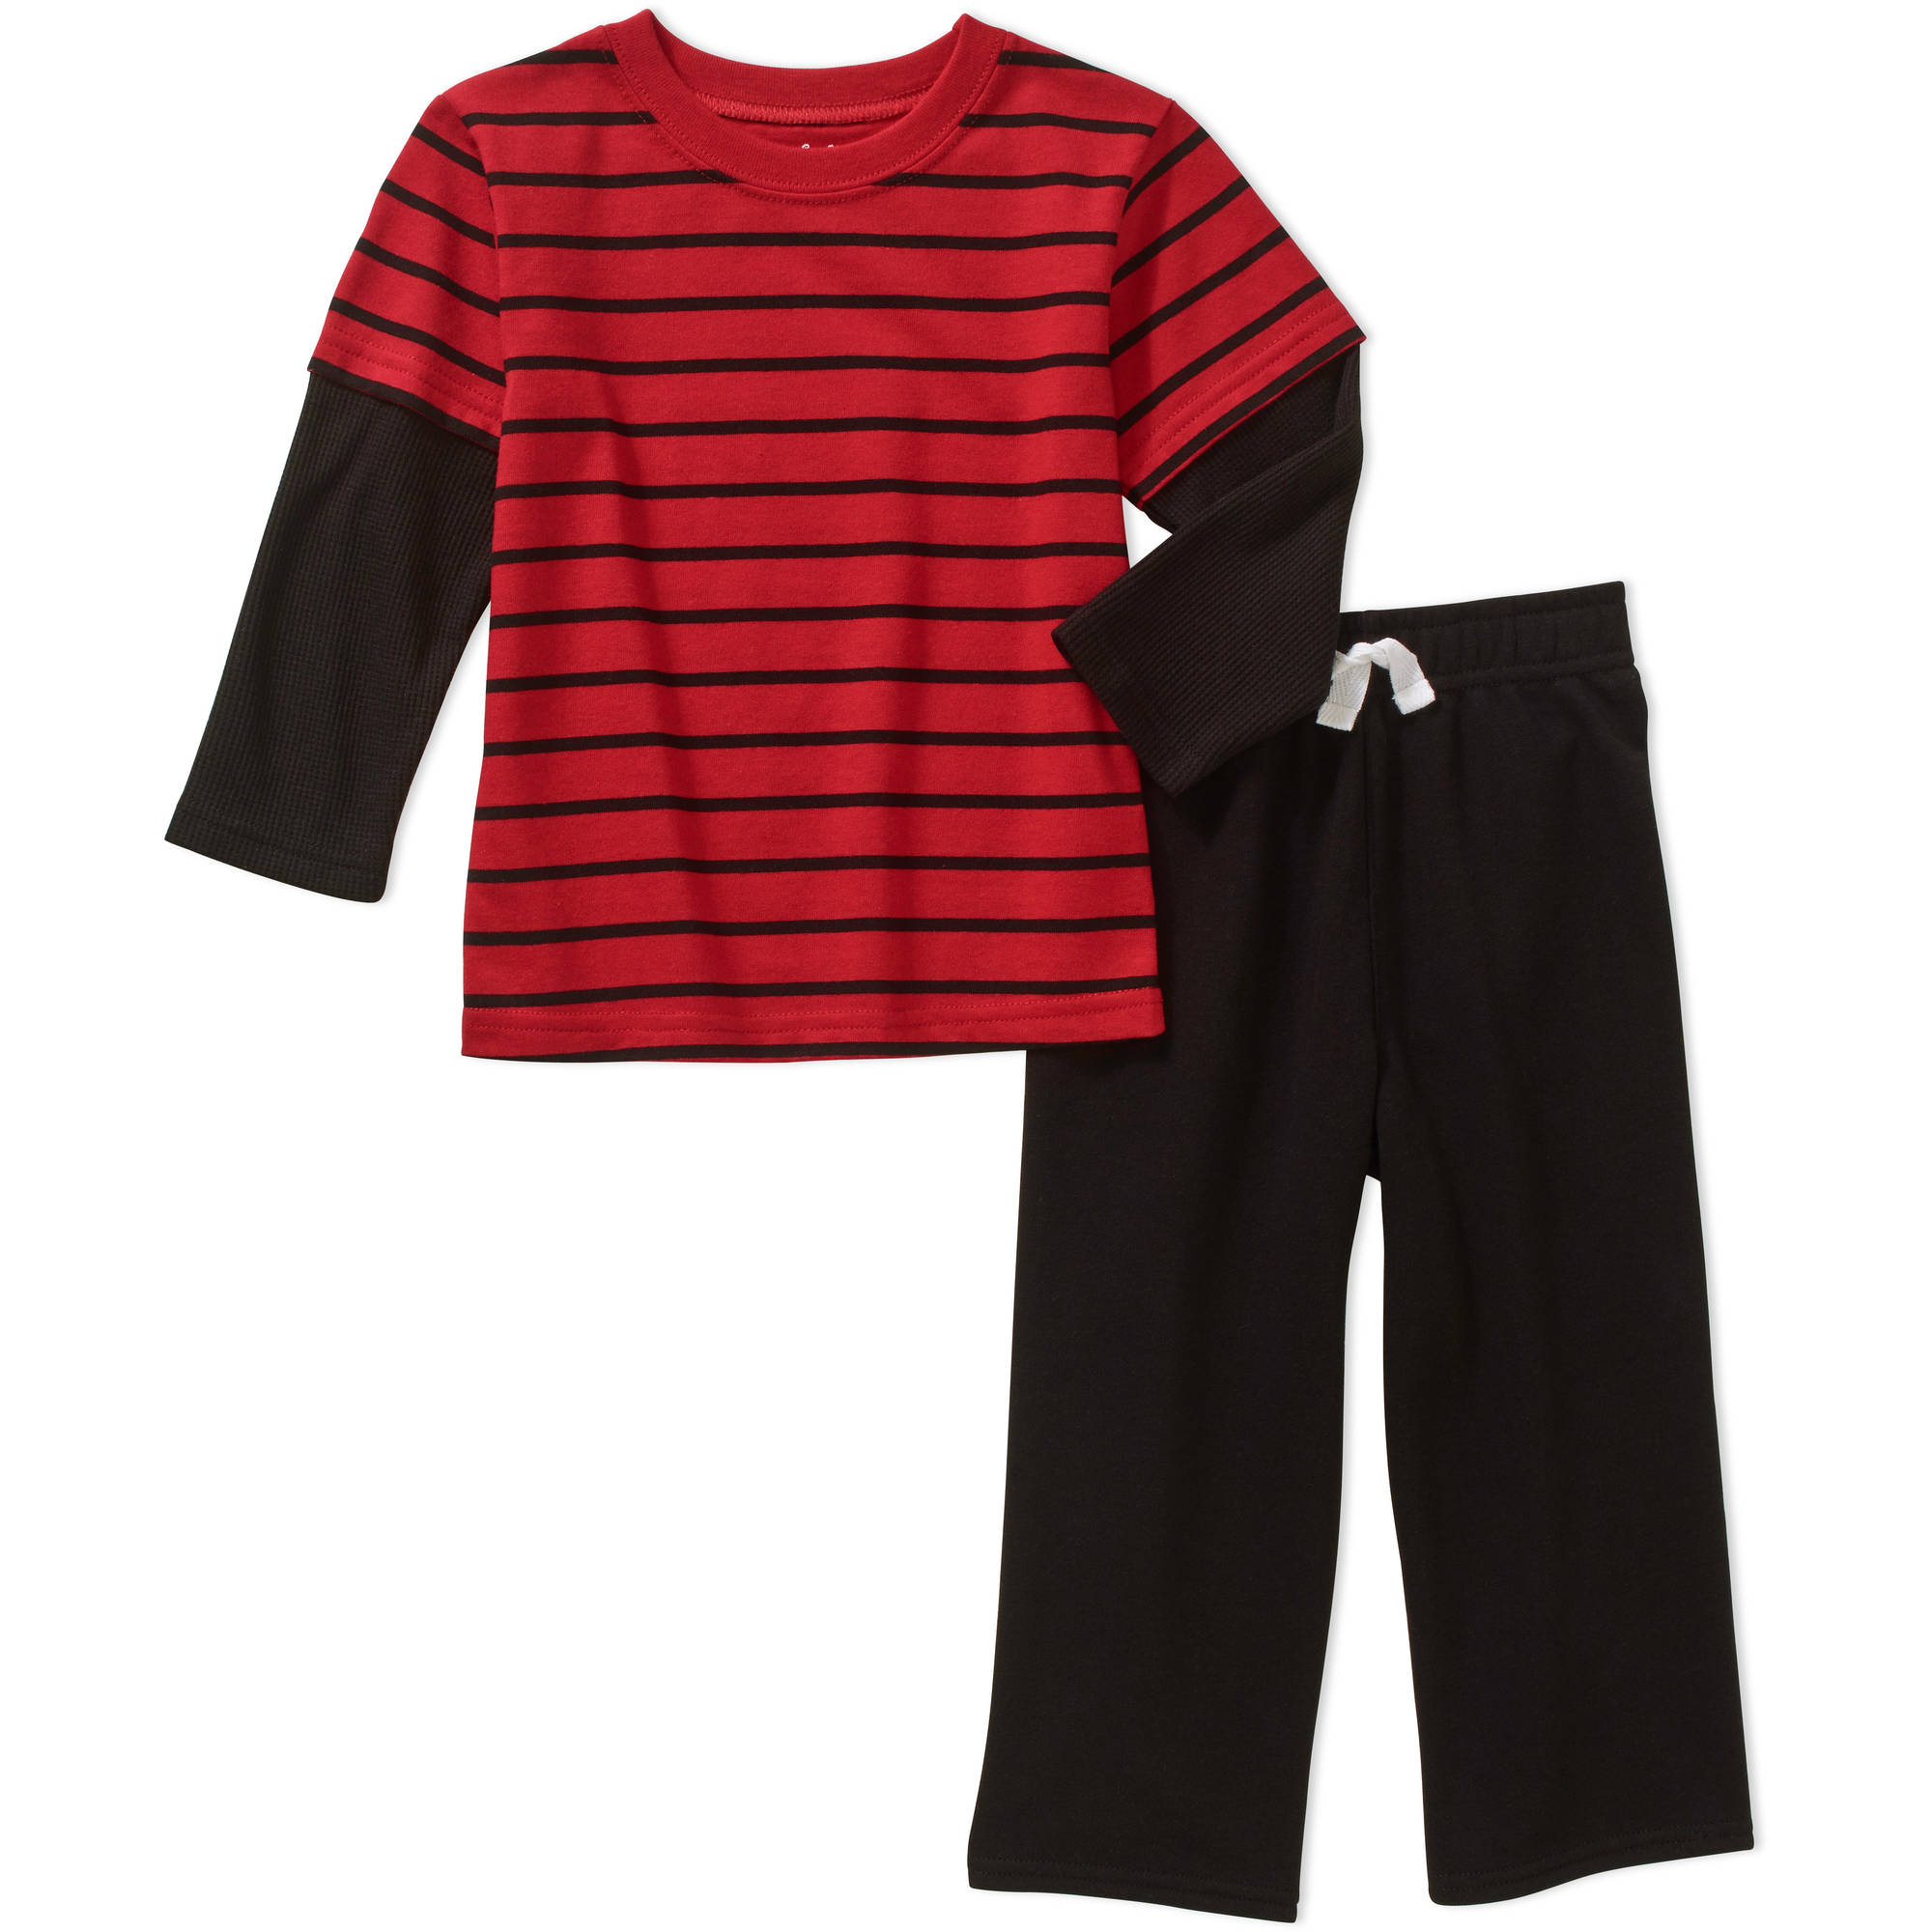 Garanimals Baby Toddler Boys' Long Sleeve Stripe Shirt and French Terry Pants 2-Piece Outfit Set